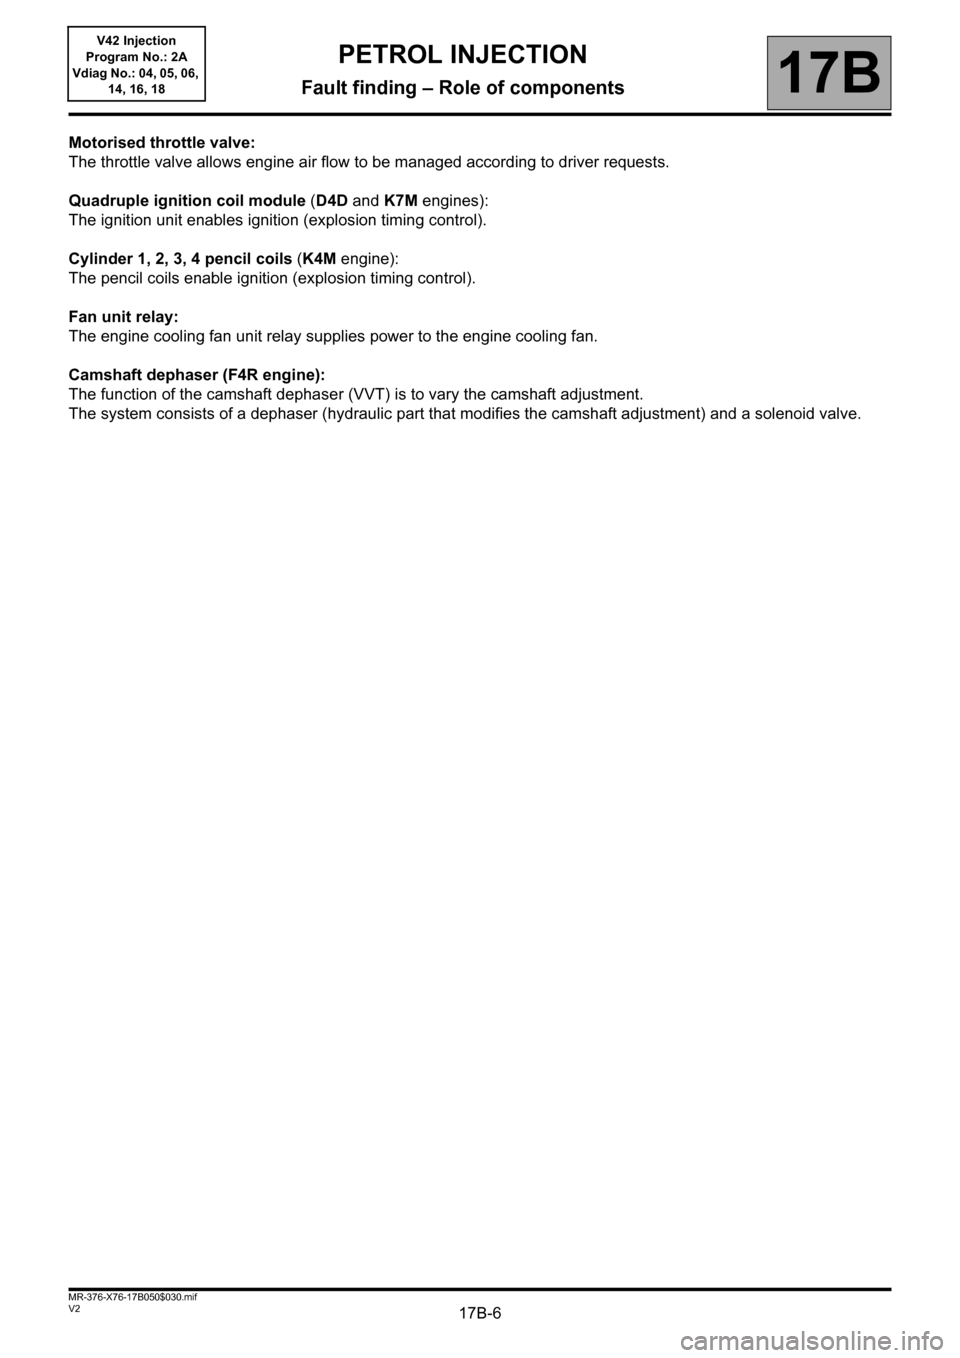 RENAULT KANGOO 2013 X61 / 2.G Petrol V42 Injection Workshop Manual, Page 6